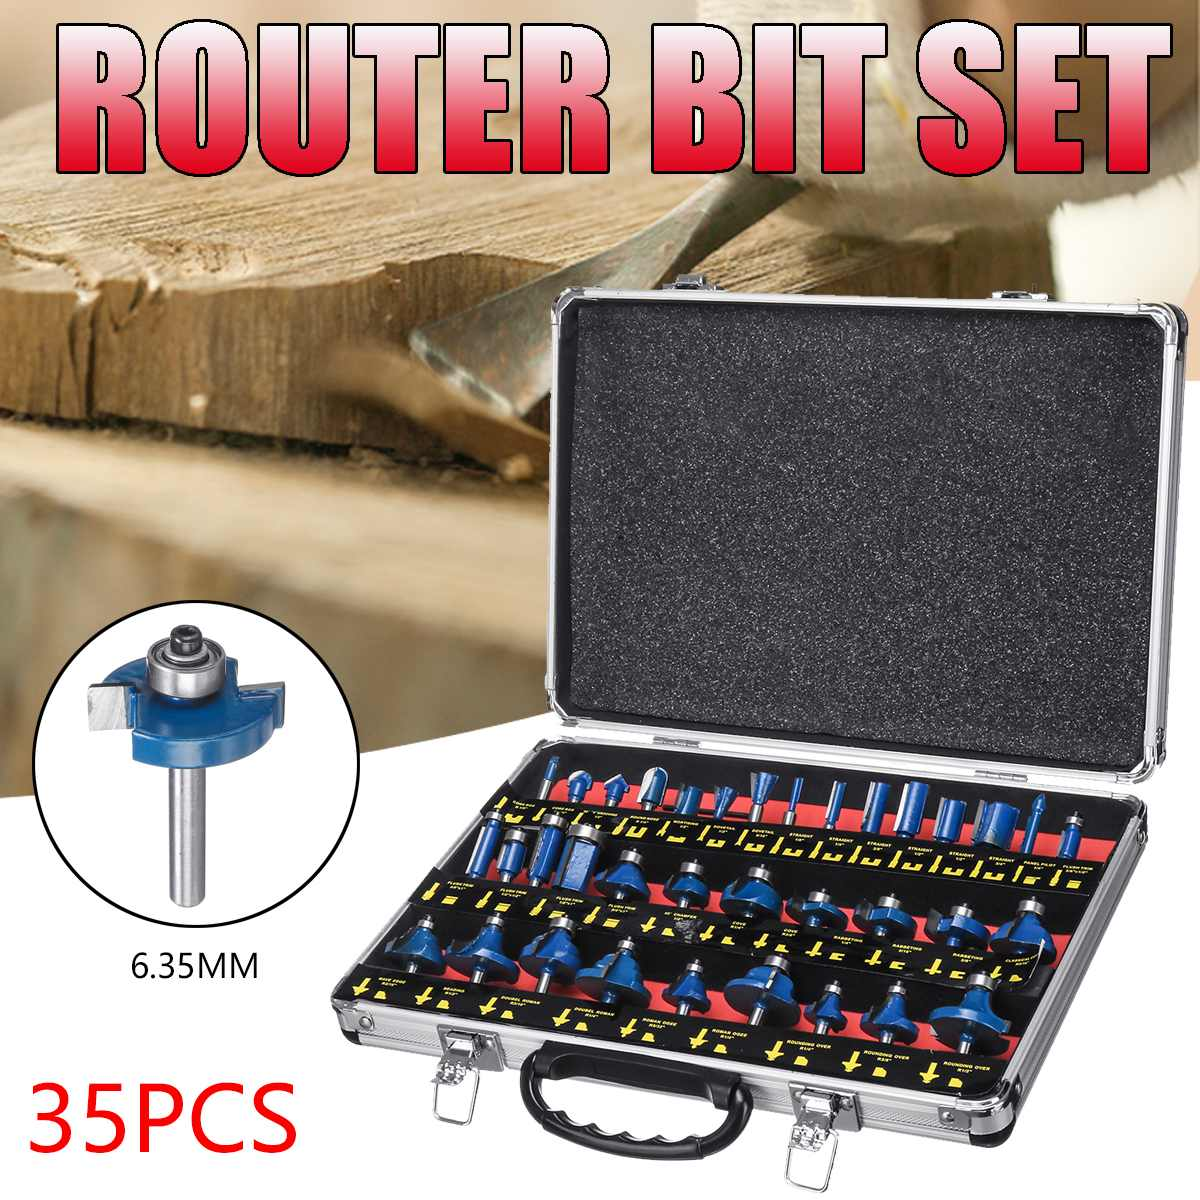 35PCS 1/4 Inch 6.35mm Wood Milling Cutter Shank Router Bit Set Trimming Machine Tool For Electric Trimmer Wood Work Cutting Kit